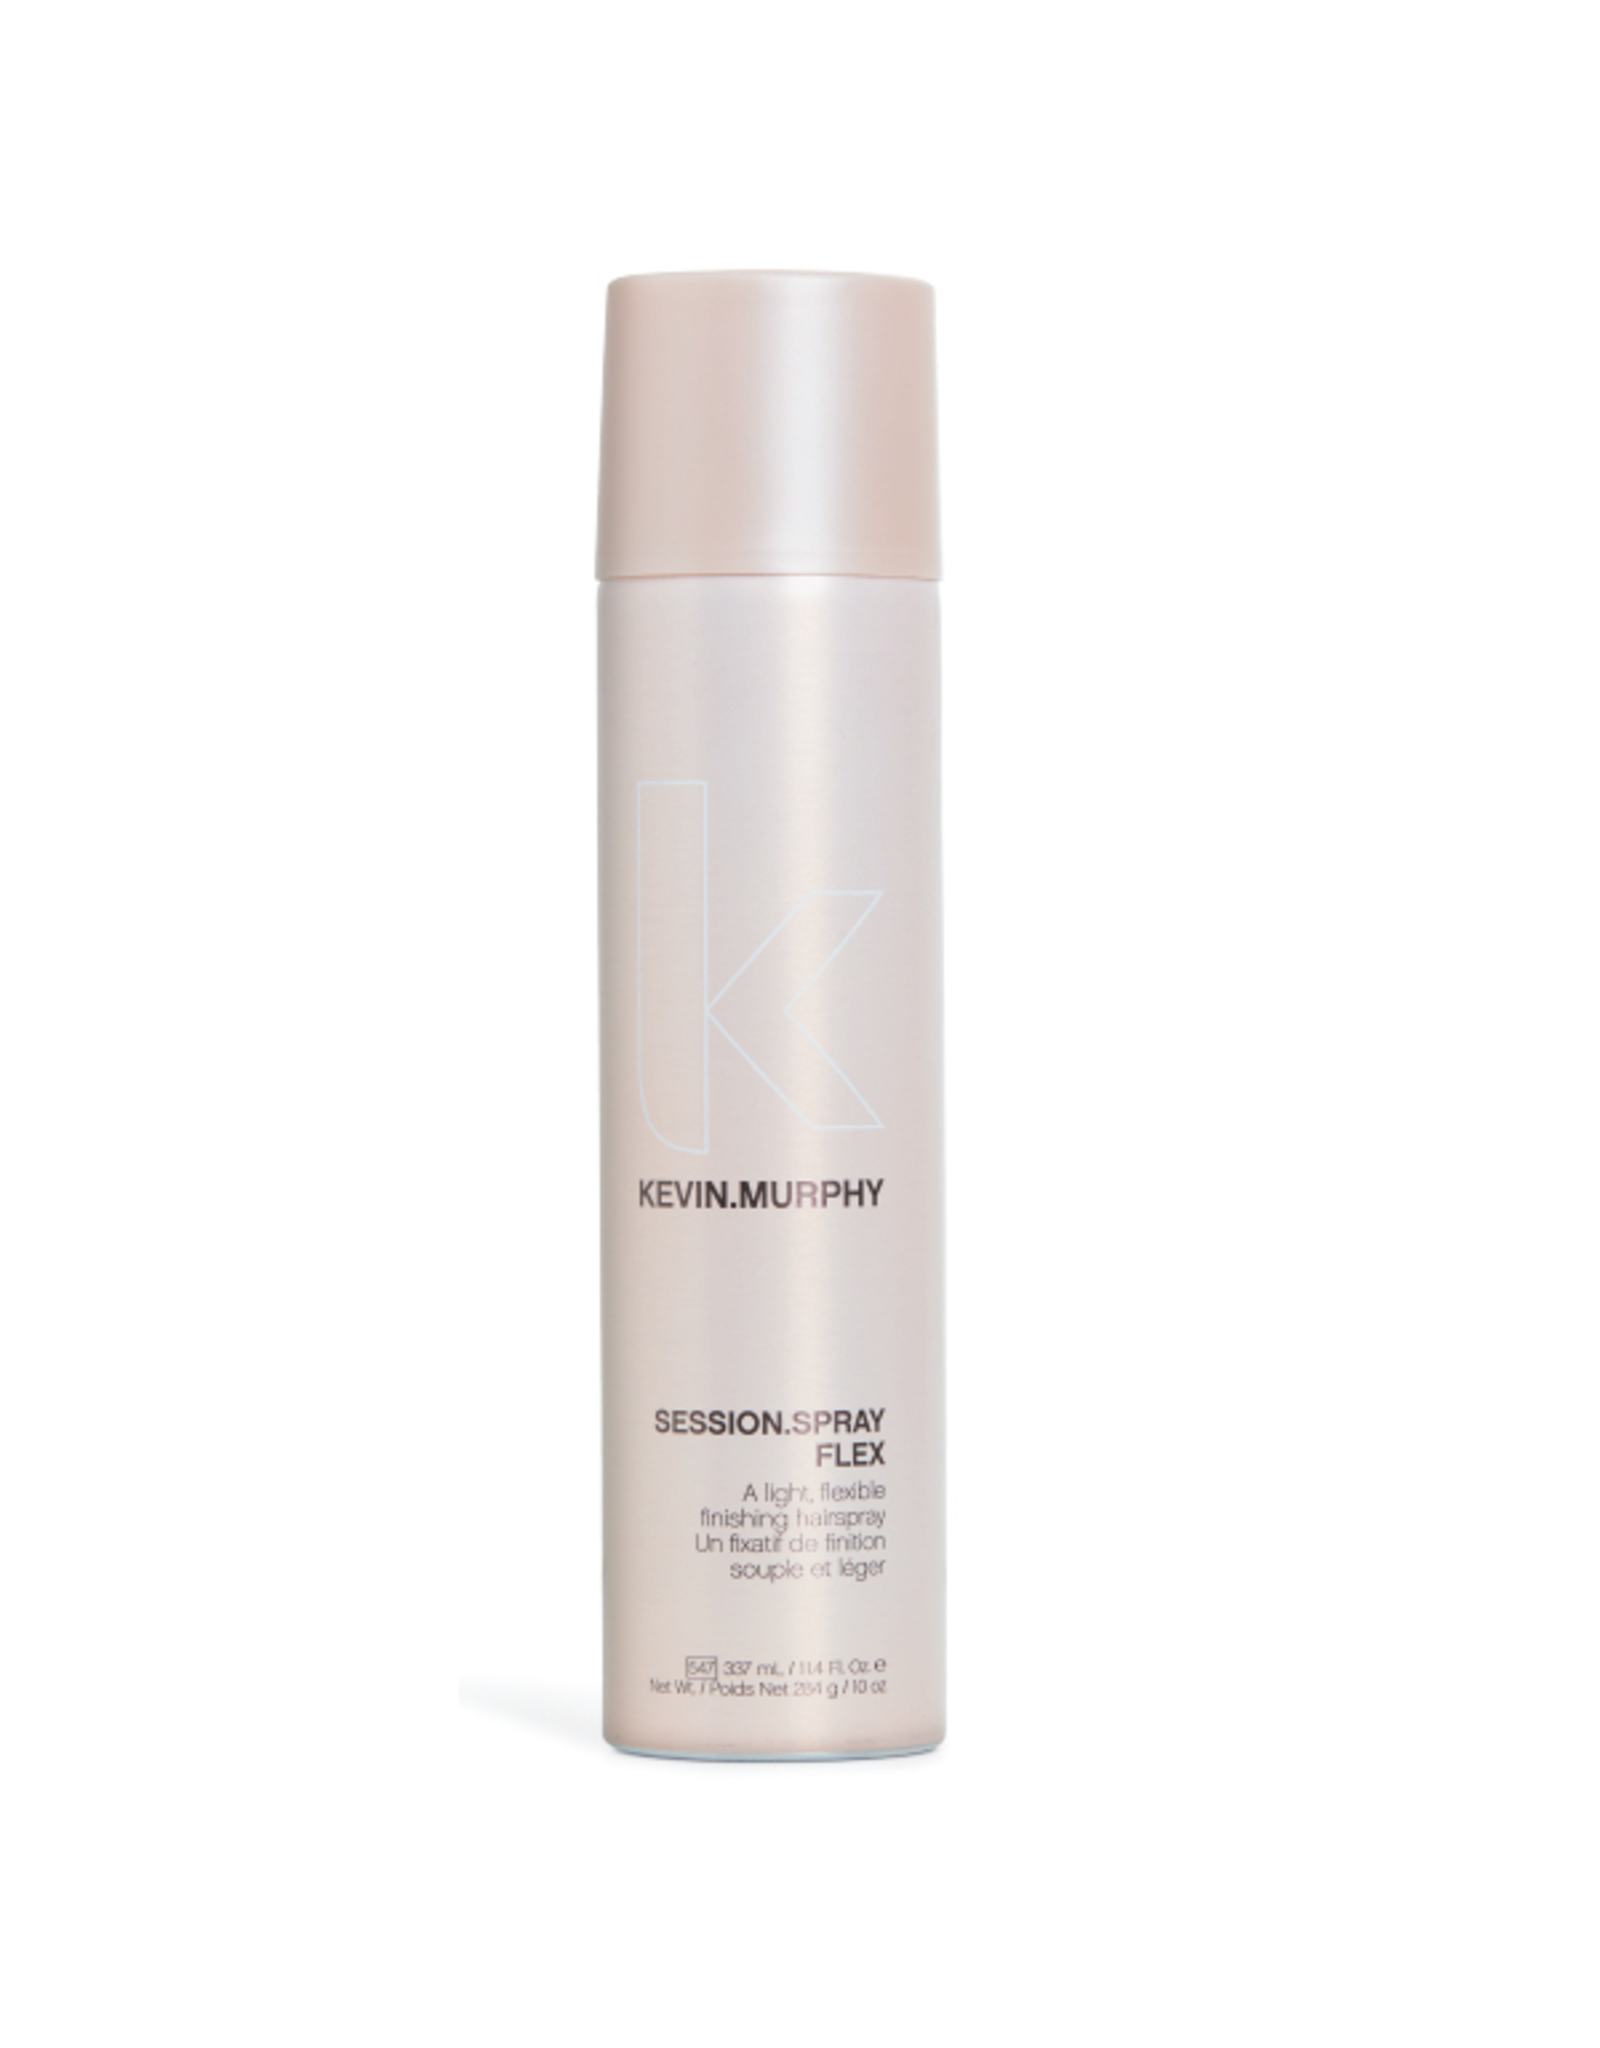 KEVIN.MURPHY Session.Spray Flex (100 ml) - SPECIAL EDITION